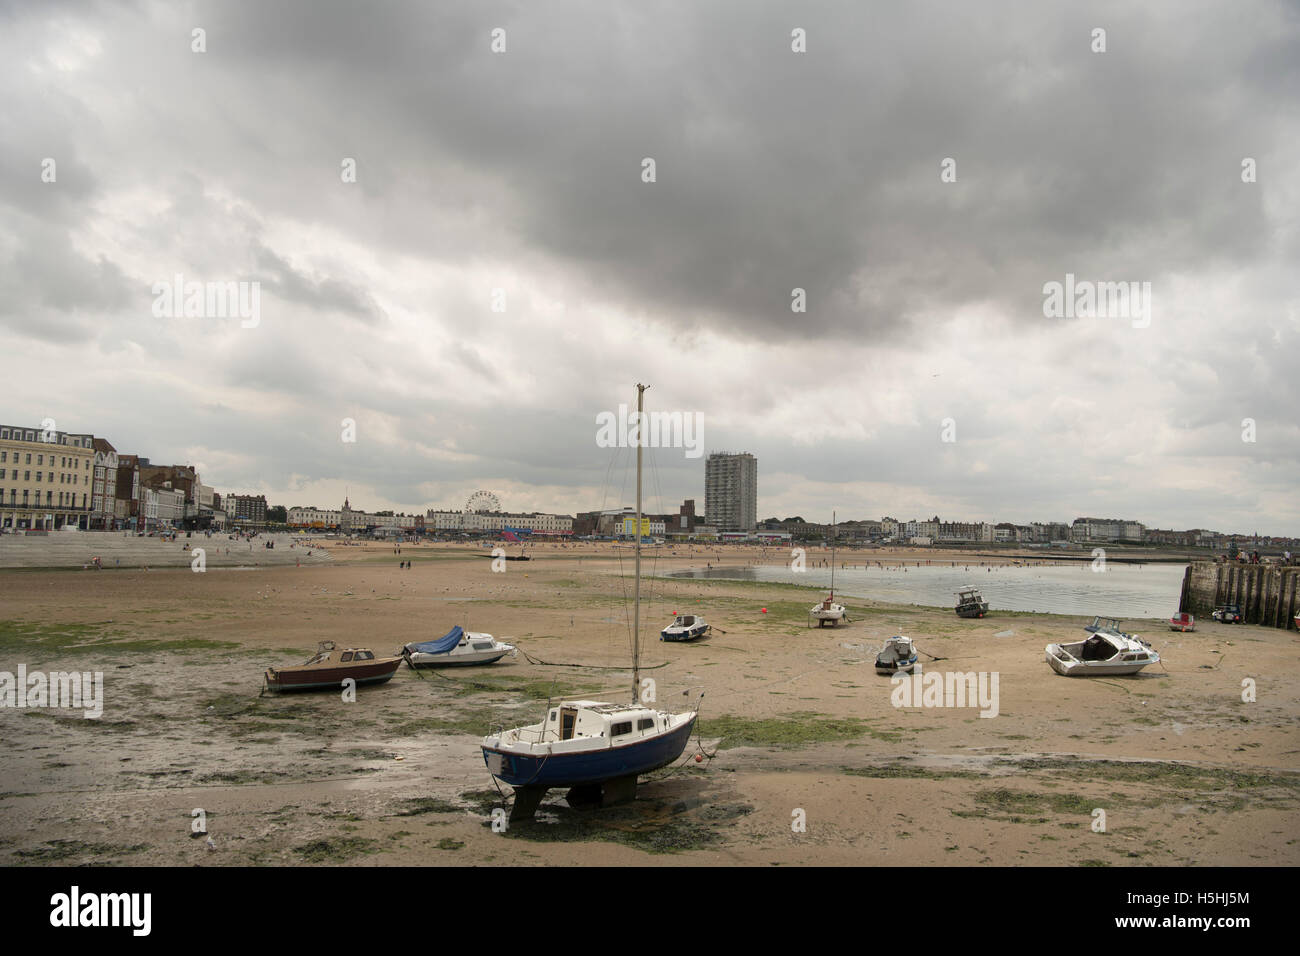 Tide out in Margate Harbour - Stock Image